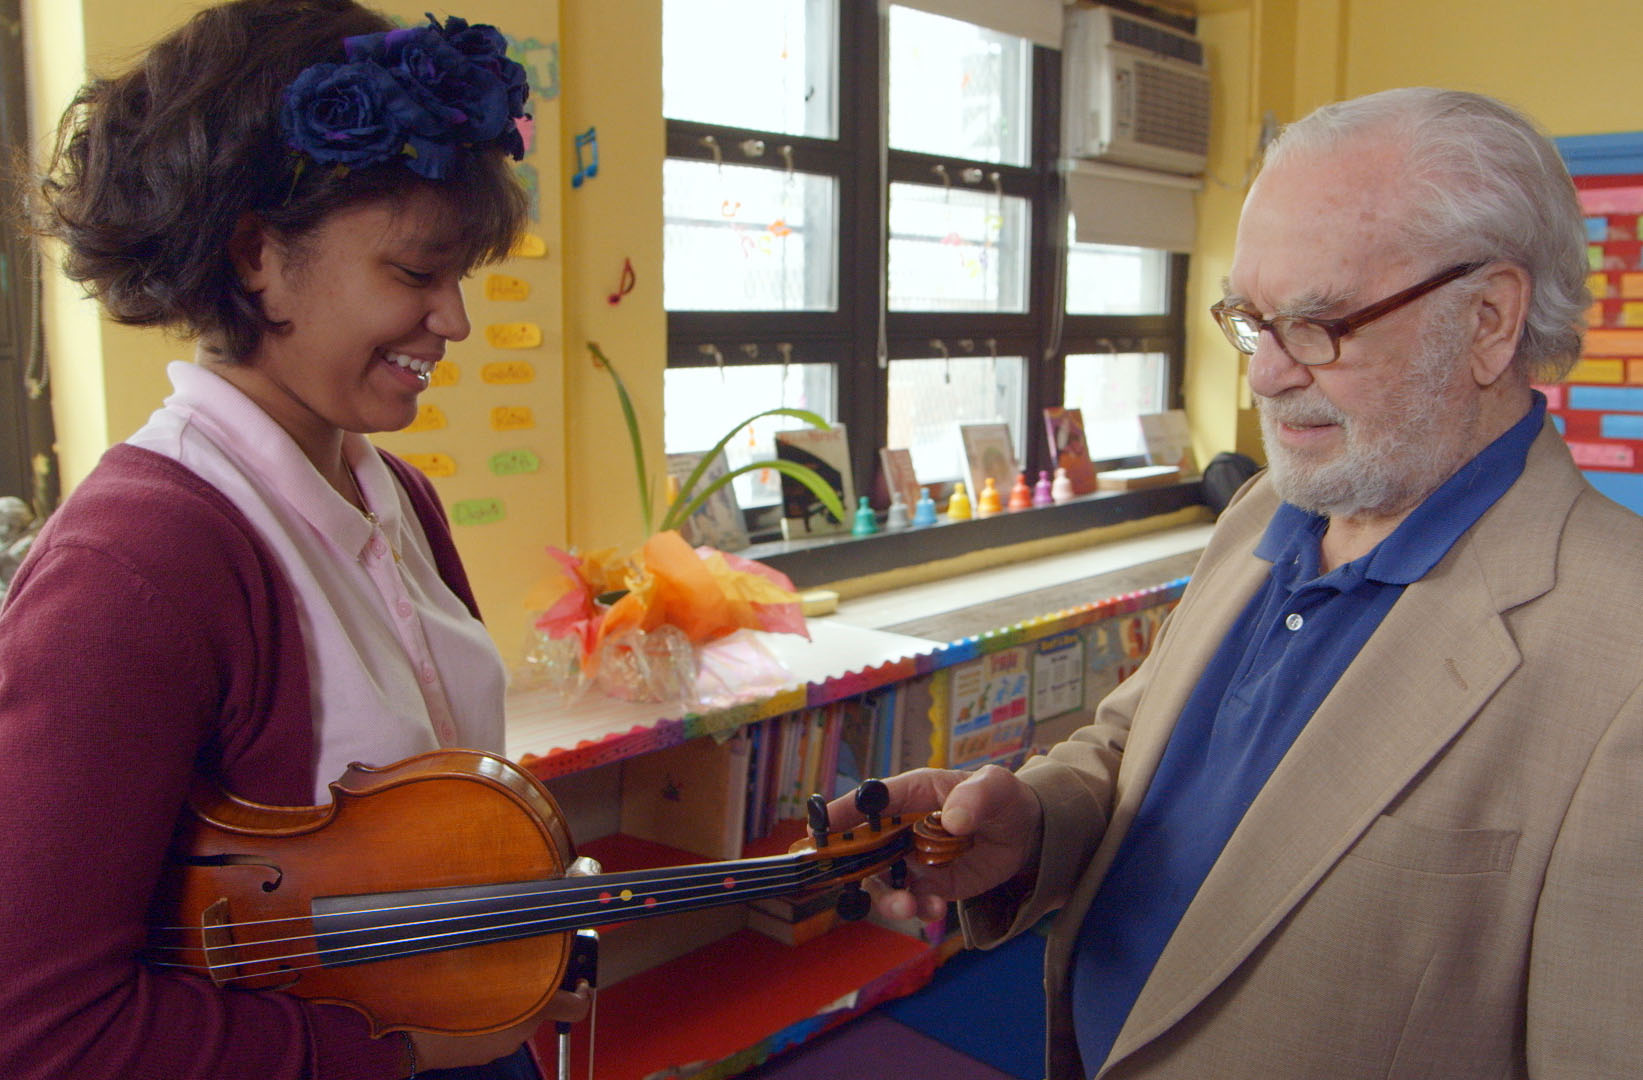 Brianna Perez holds a violin while Joe Feingold looks on